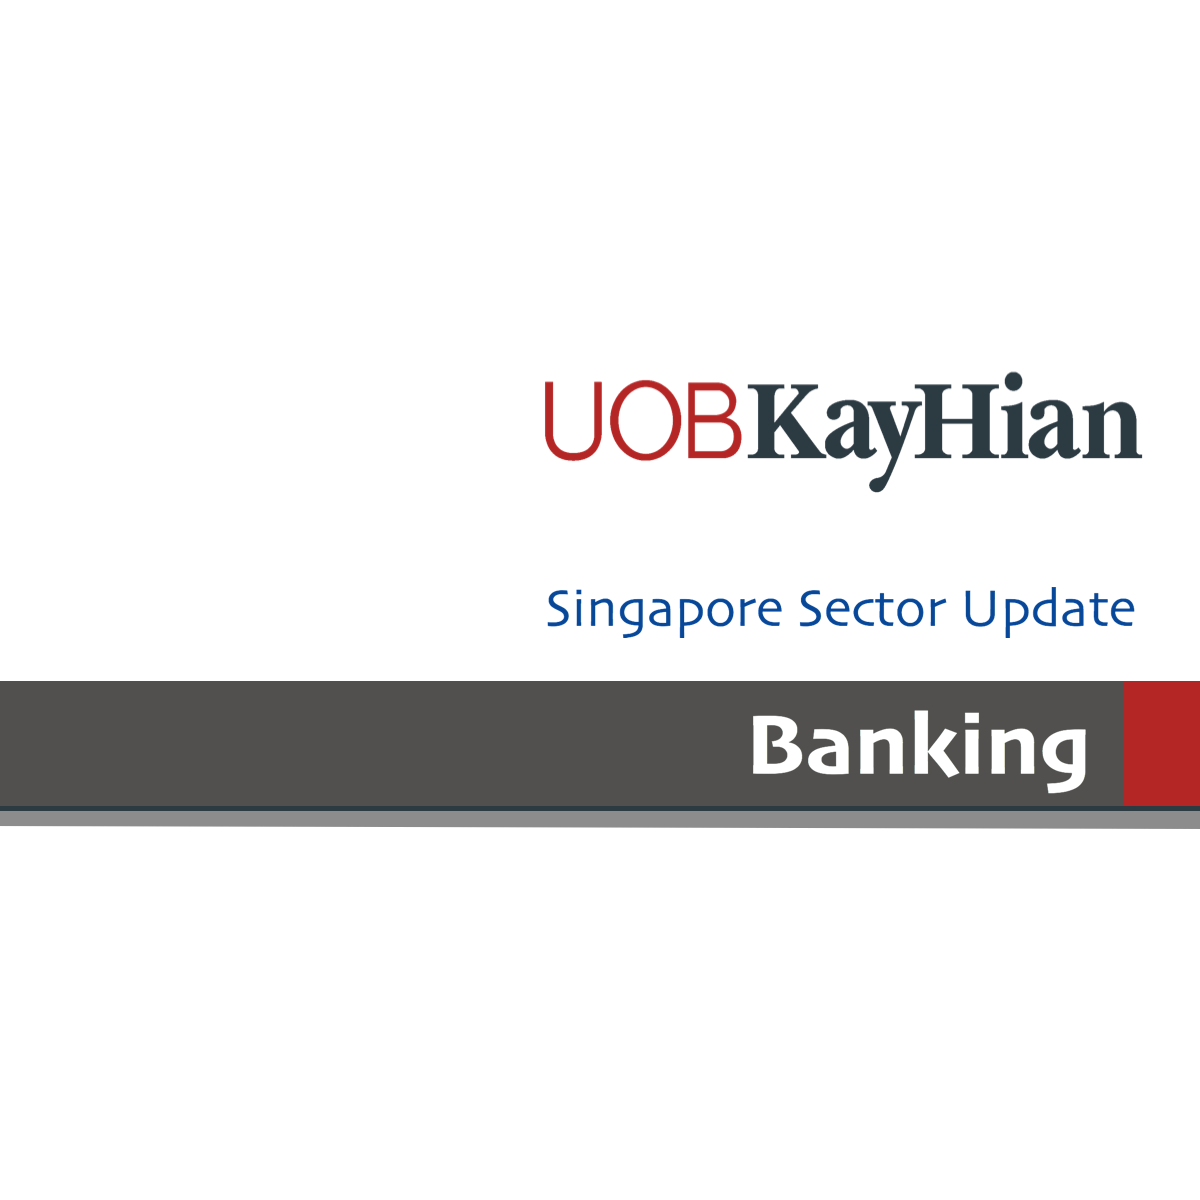 Banking – Singapore - UOB Kay Hian 2017-11-07: 3Q17 Round-up: DBS Leads In Transition To FRS 109